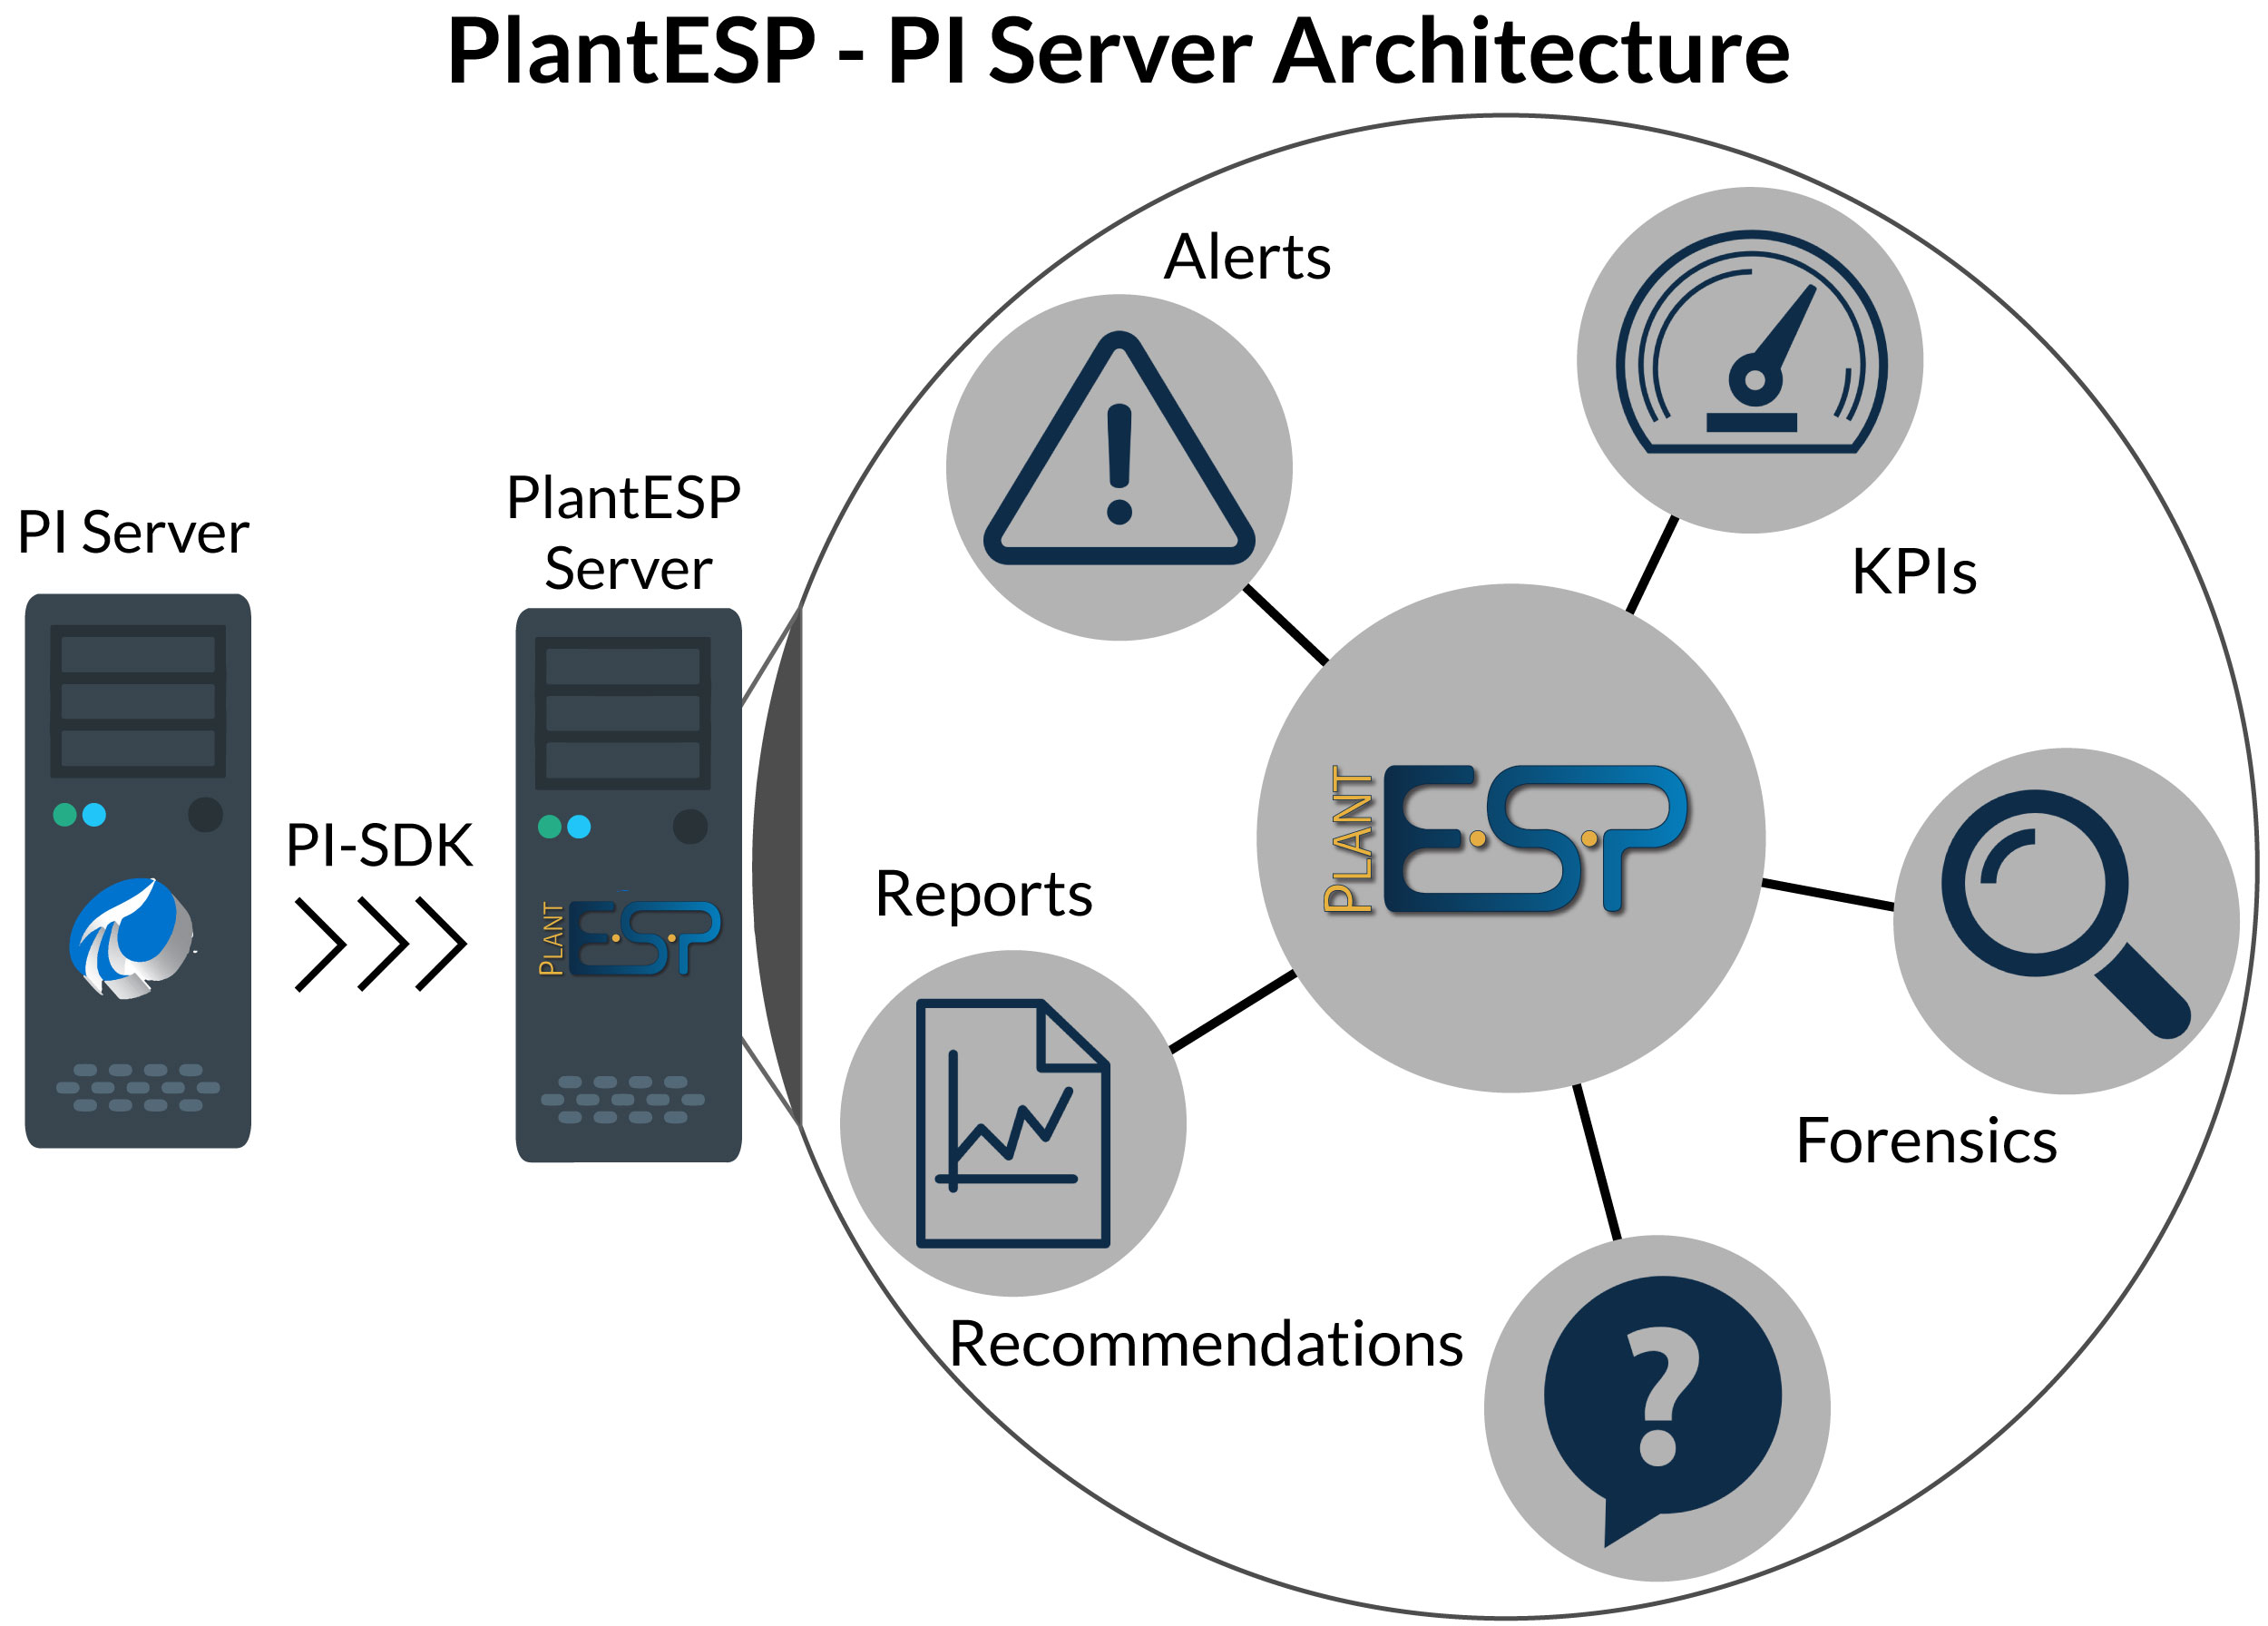 PlantESP - PI Server Architecture